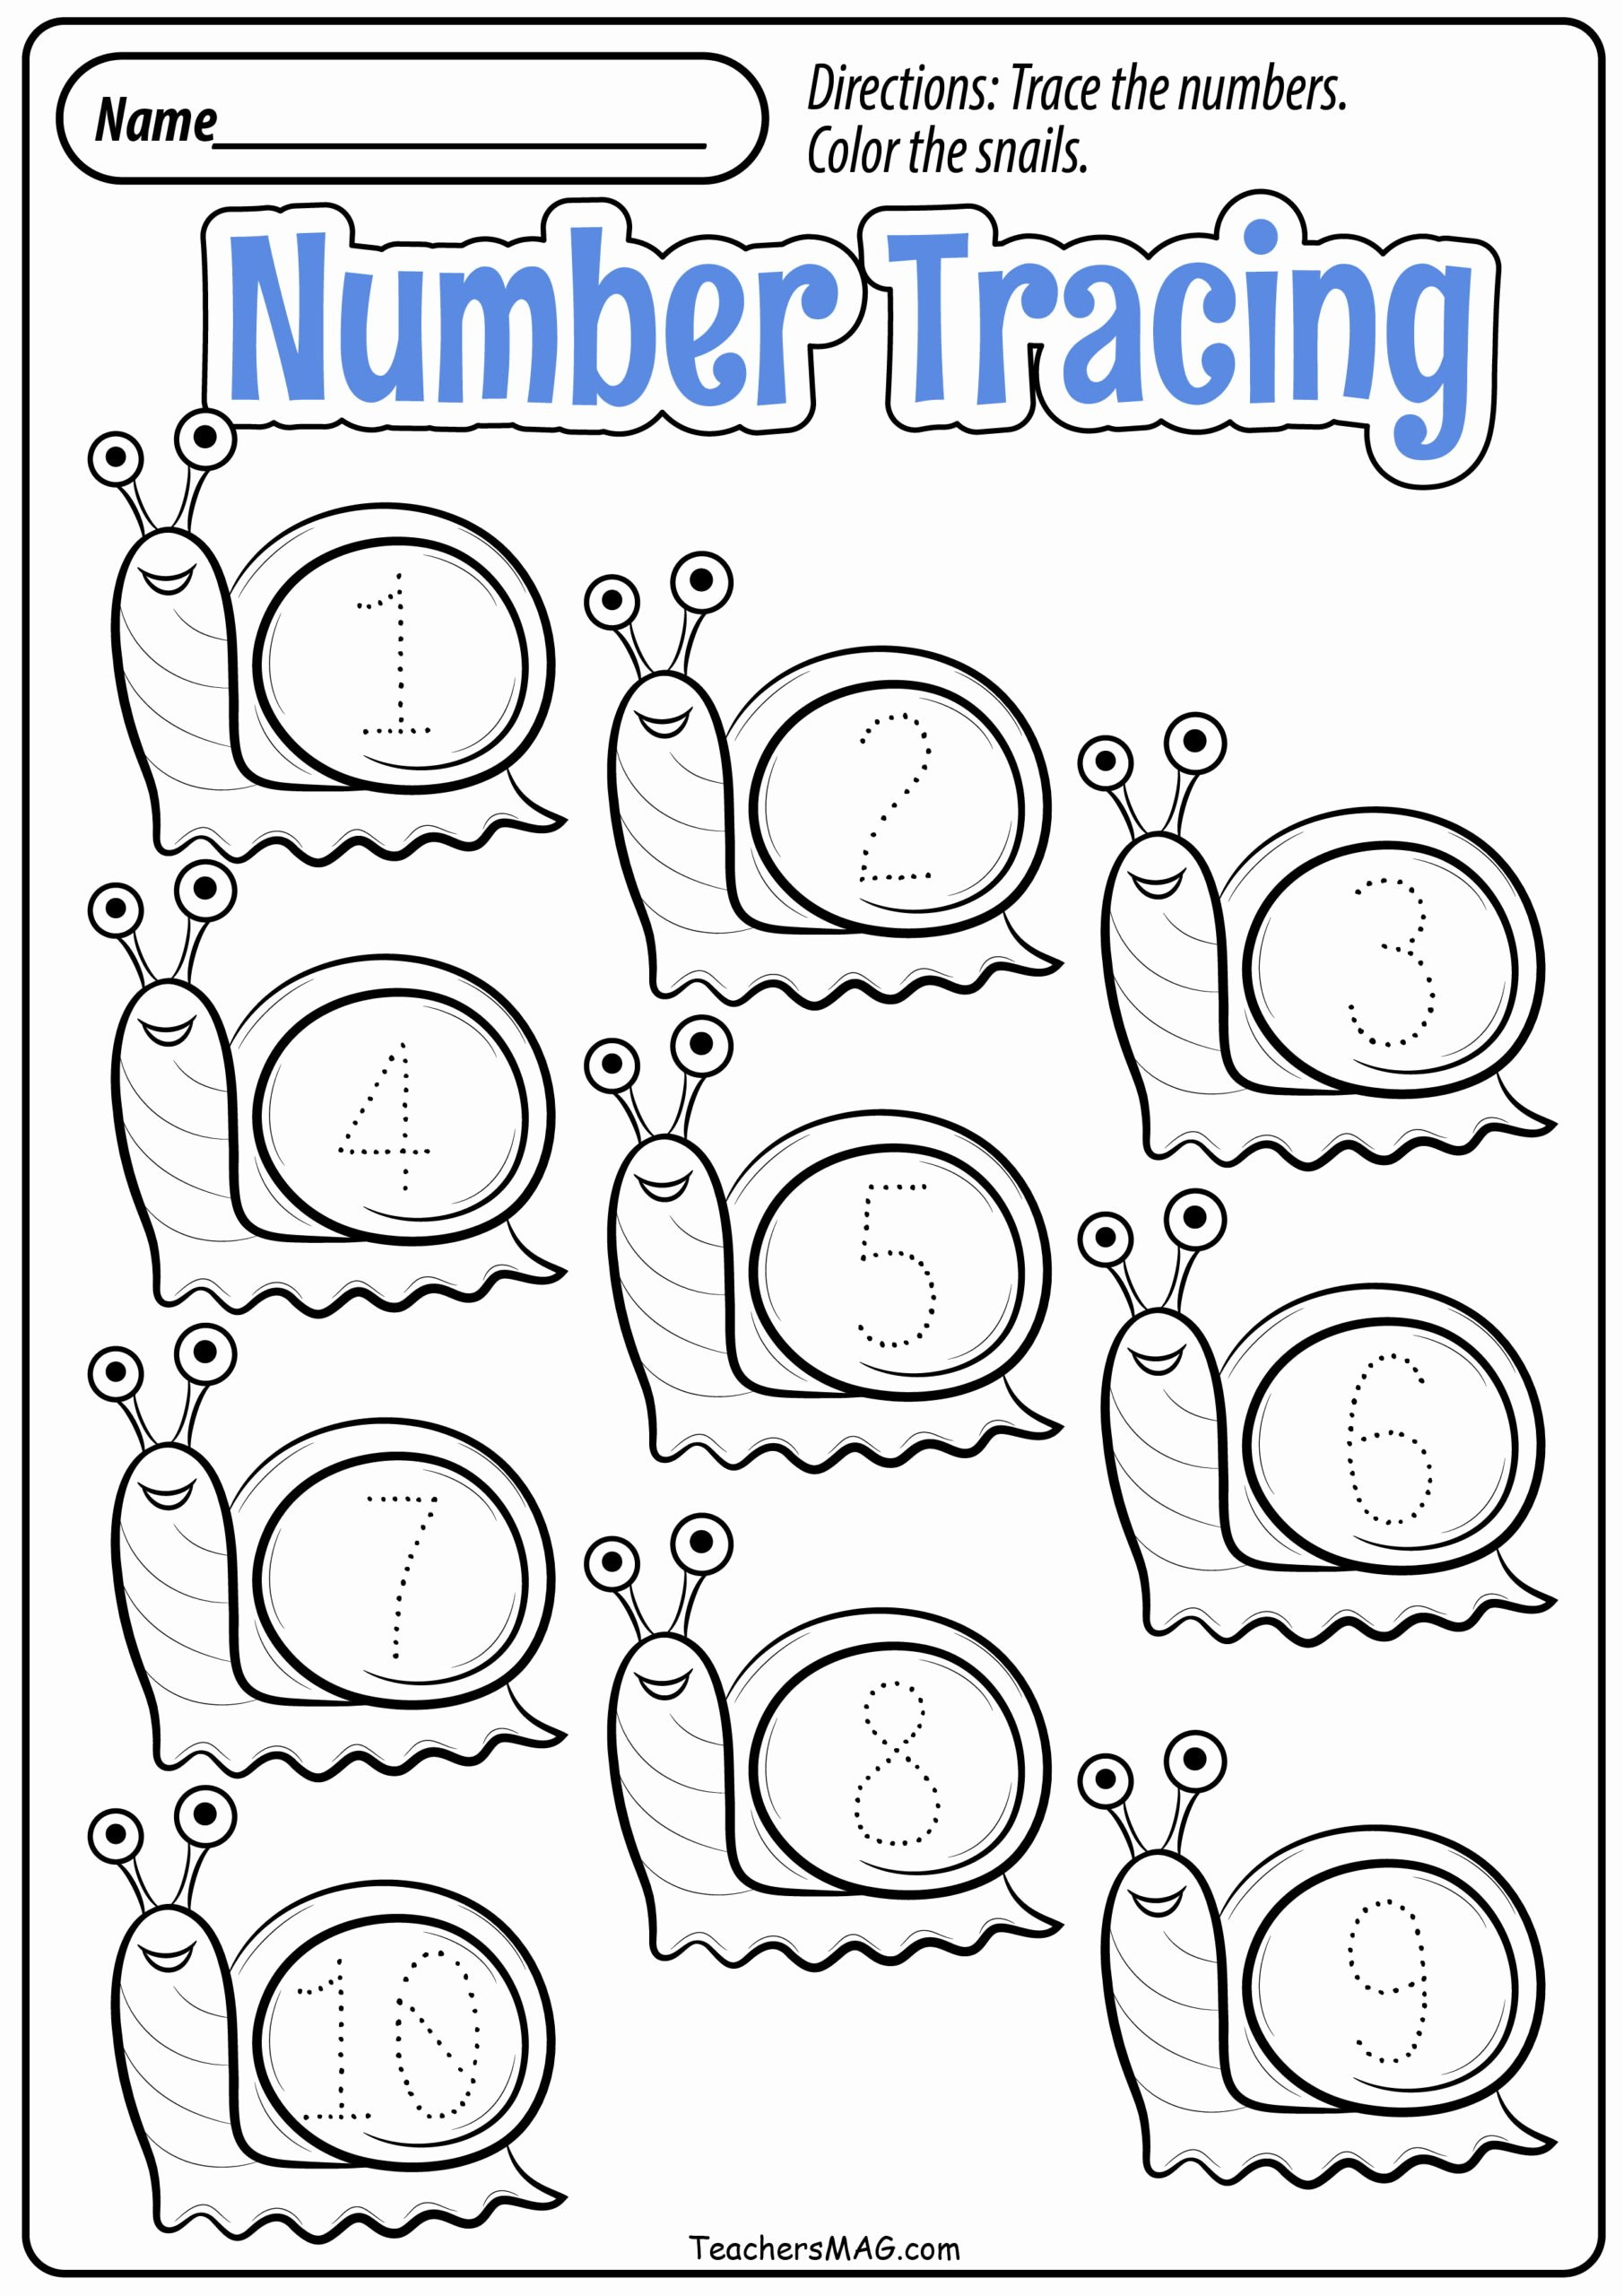 Addition Worksheets for Preschoolers with Pictures Lovely Math Worksheet Remarkable Preschool Math Worksheets Free